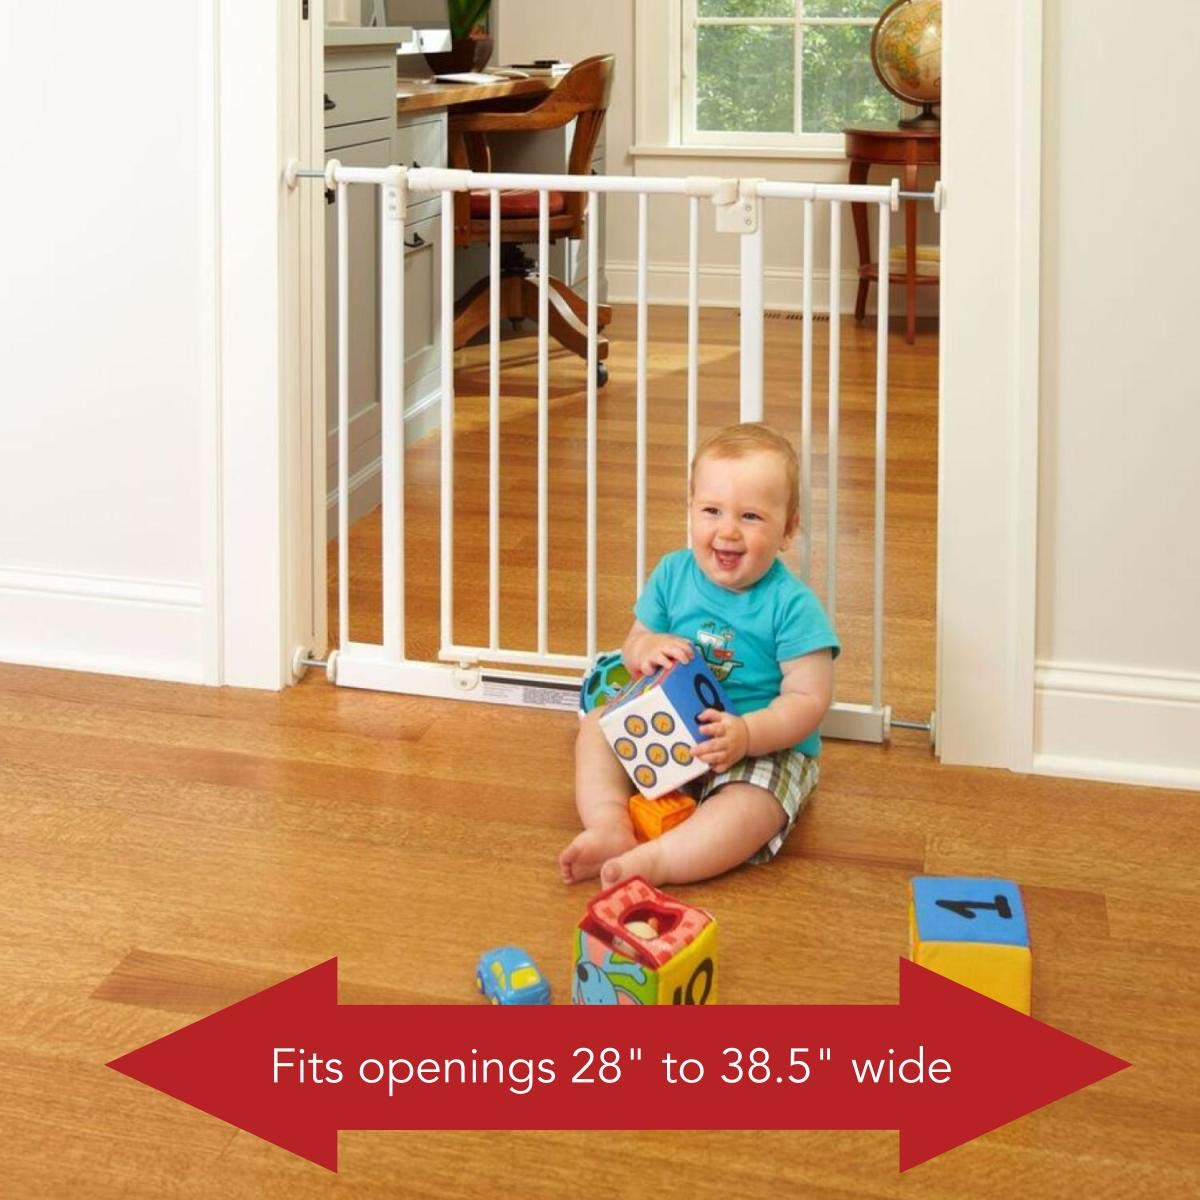 1. Supergate Easy Close Gate by the North States; Best multipurpose baby gate